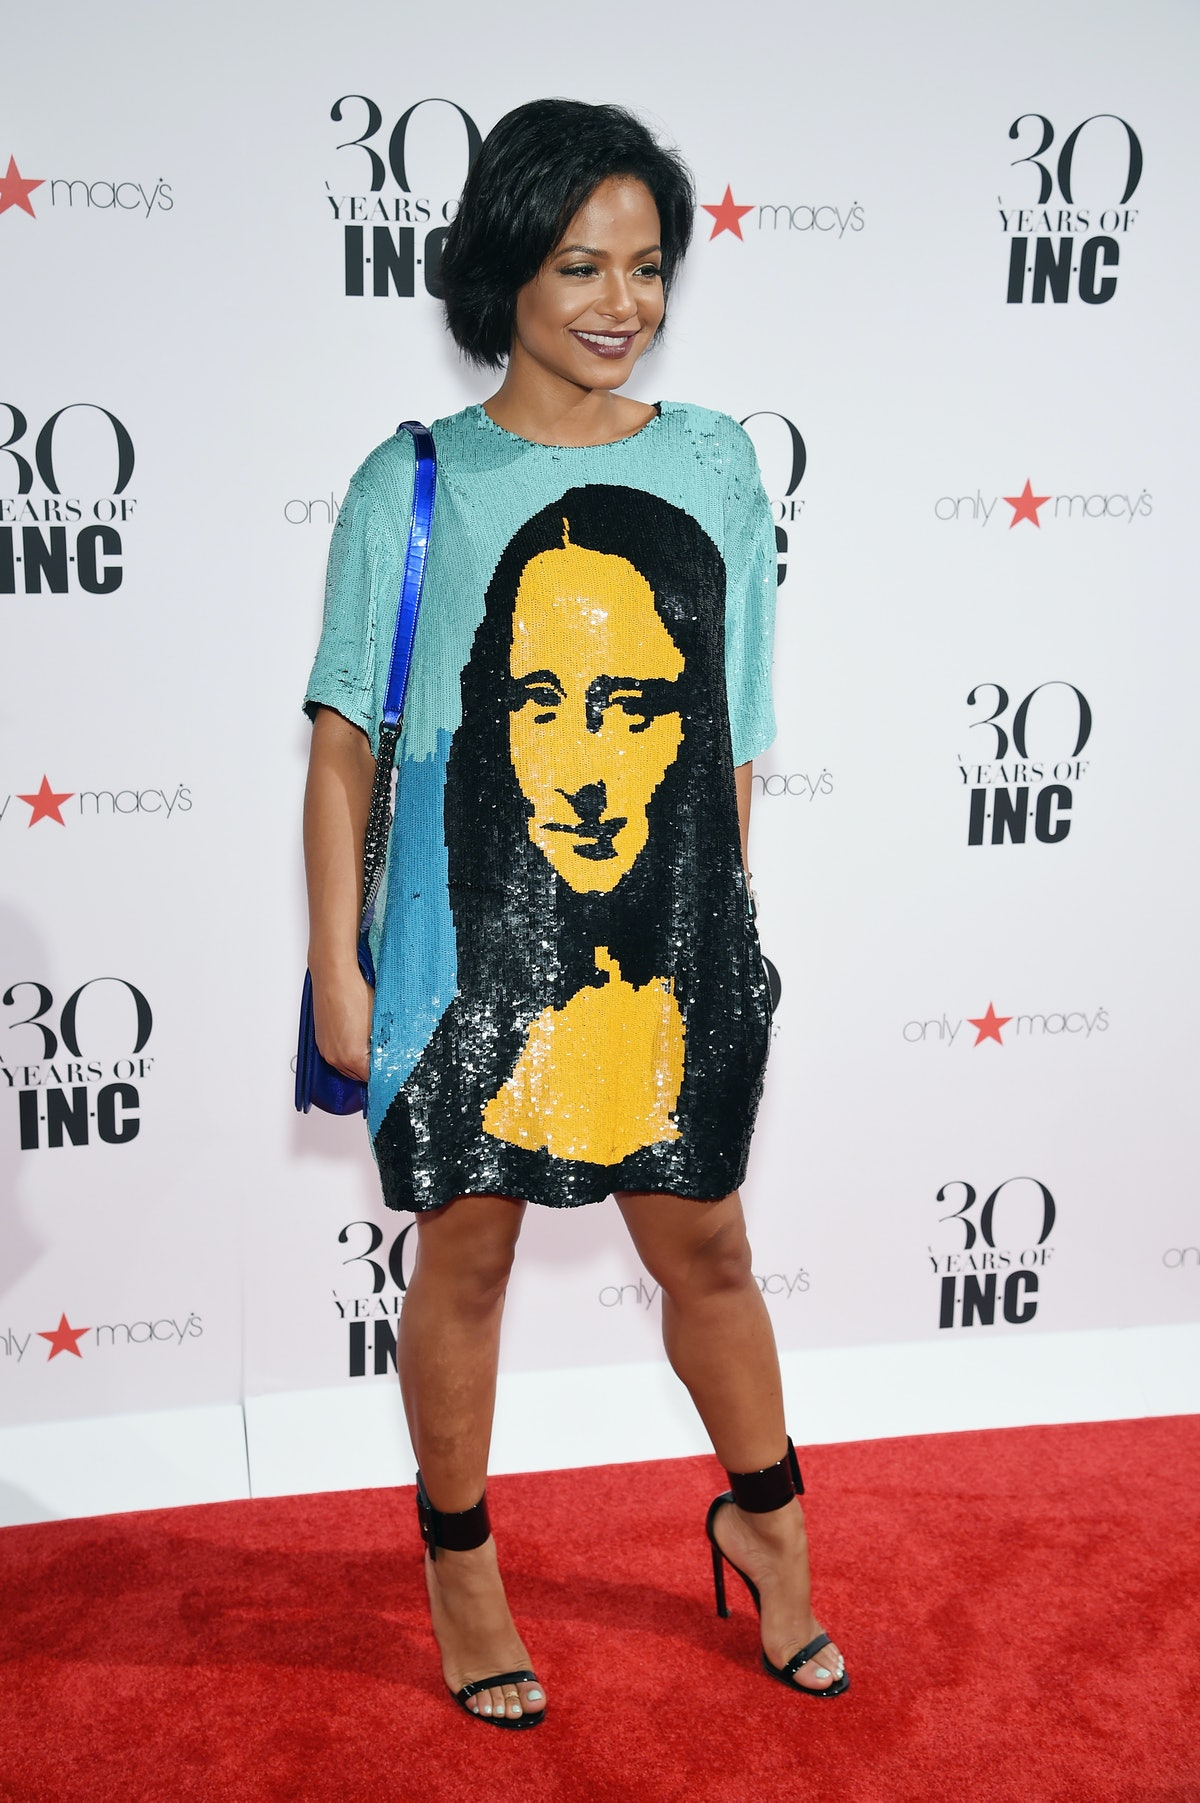 Christina Milian attends Heidi Klum + Gabriel Aubry's celebration of the launch of INC's 30th Anniversary Collection